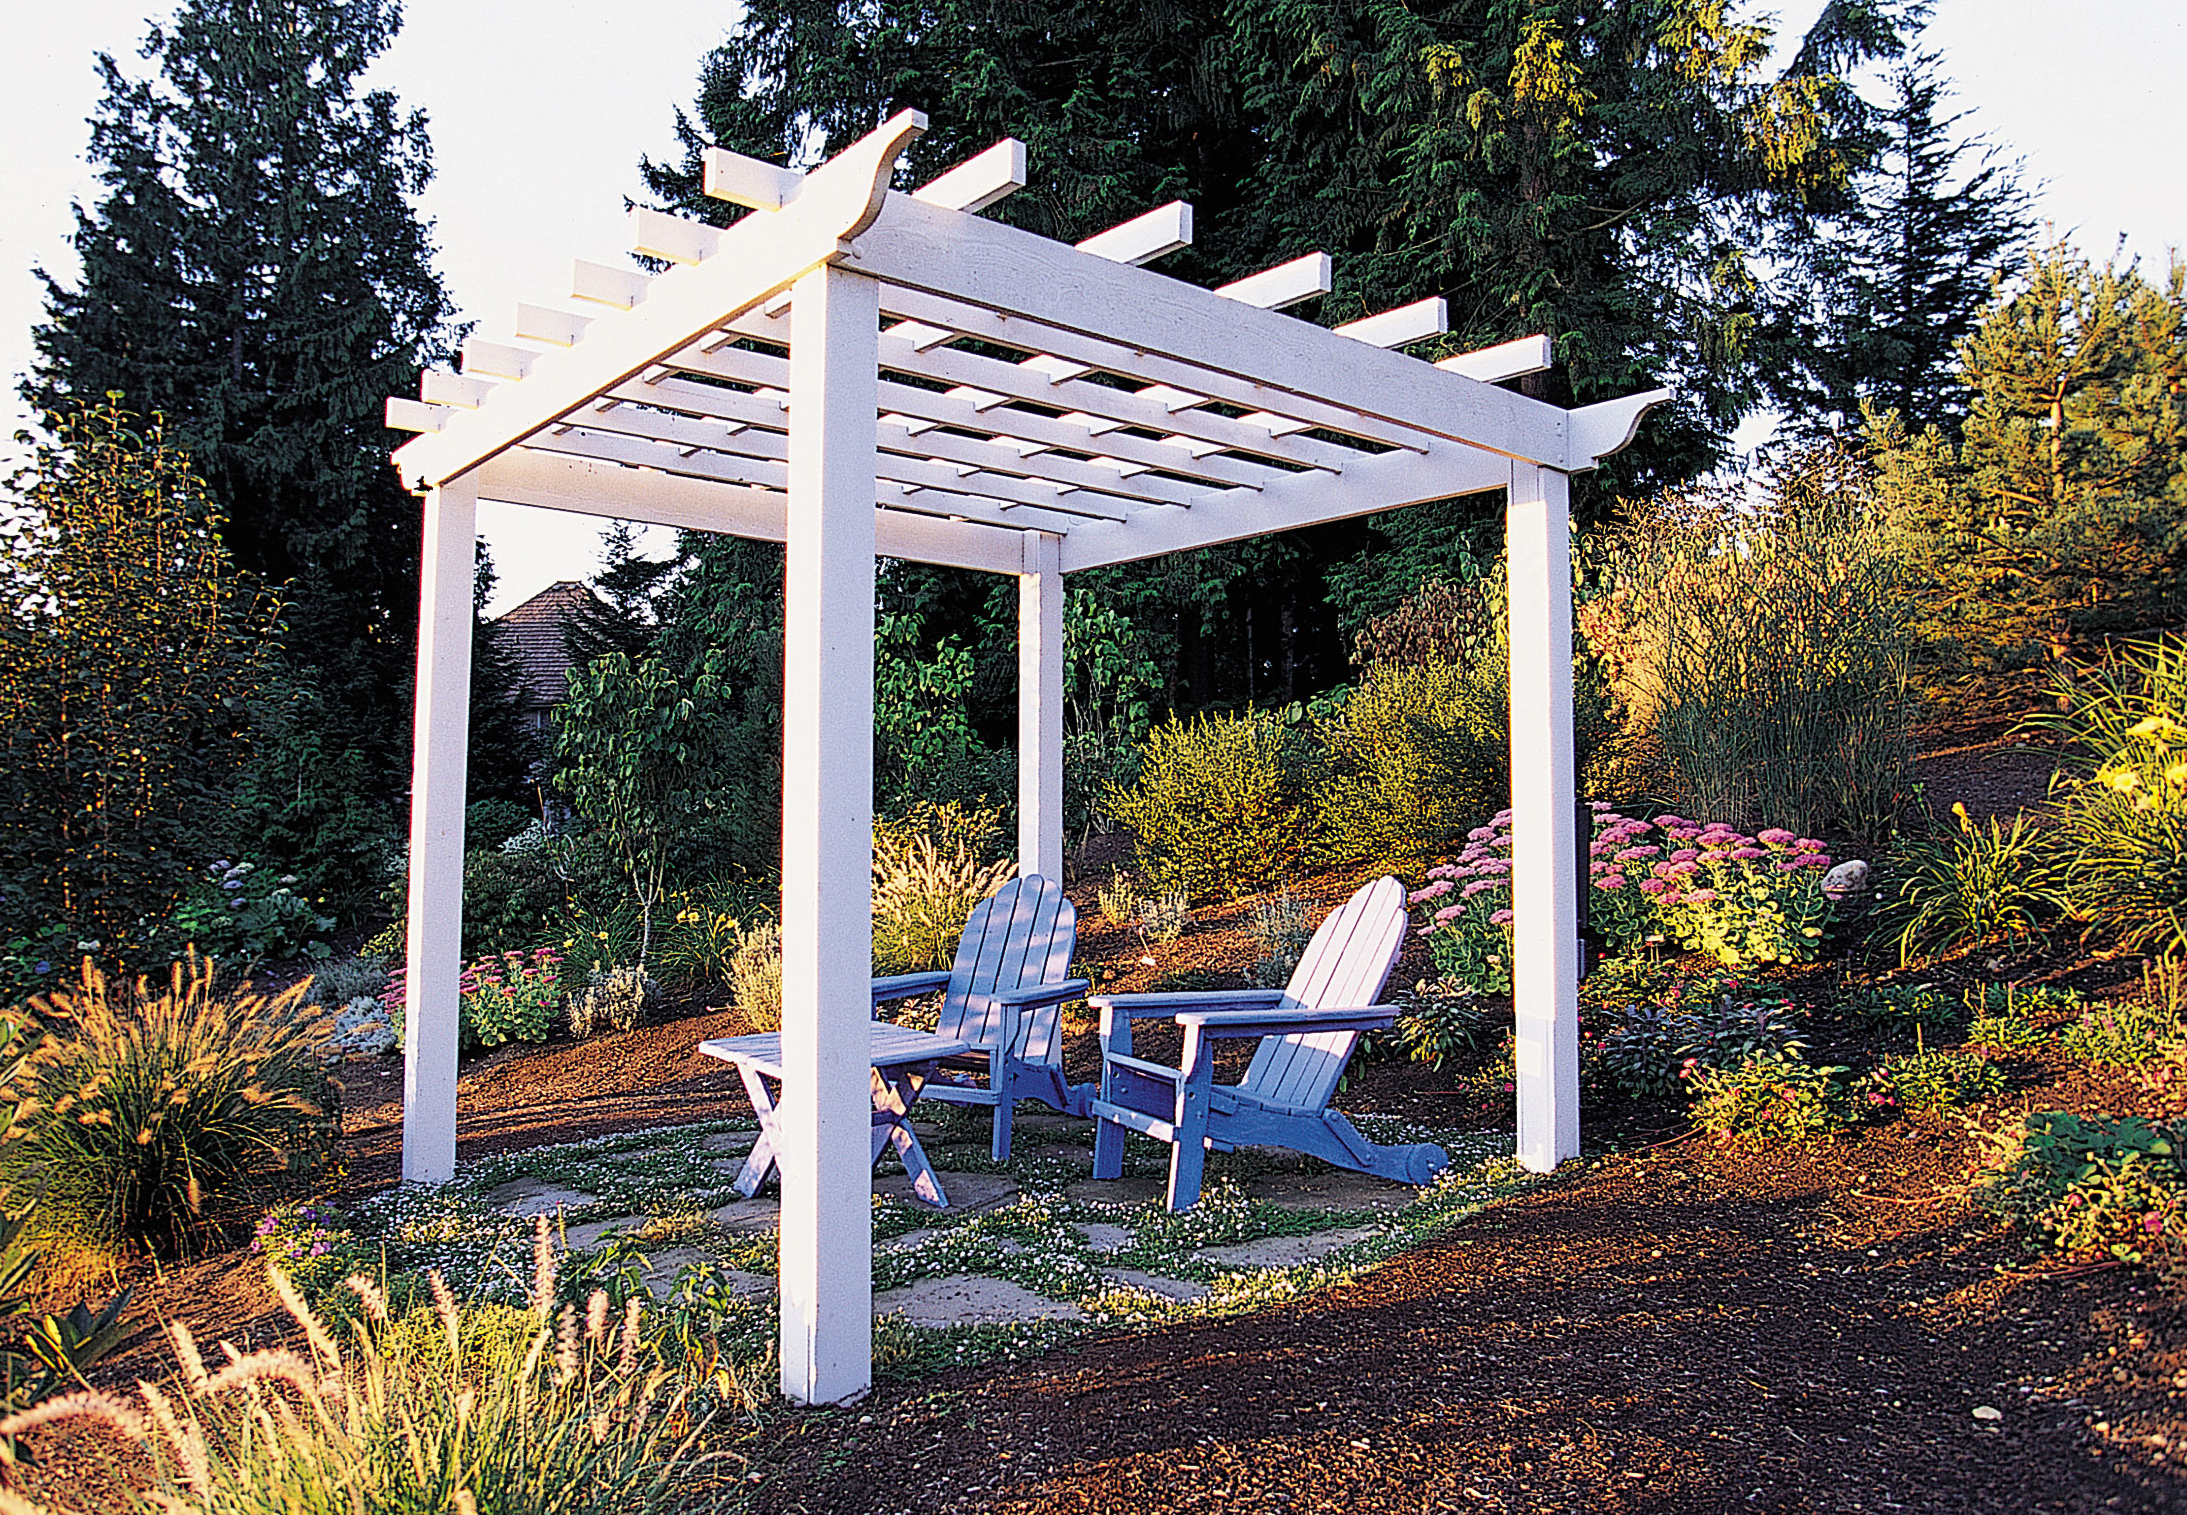 How to make a great garden trellis or arbor